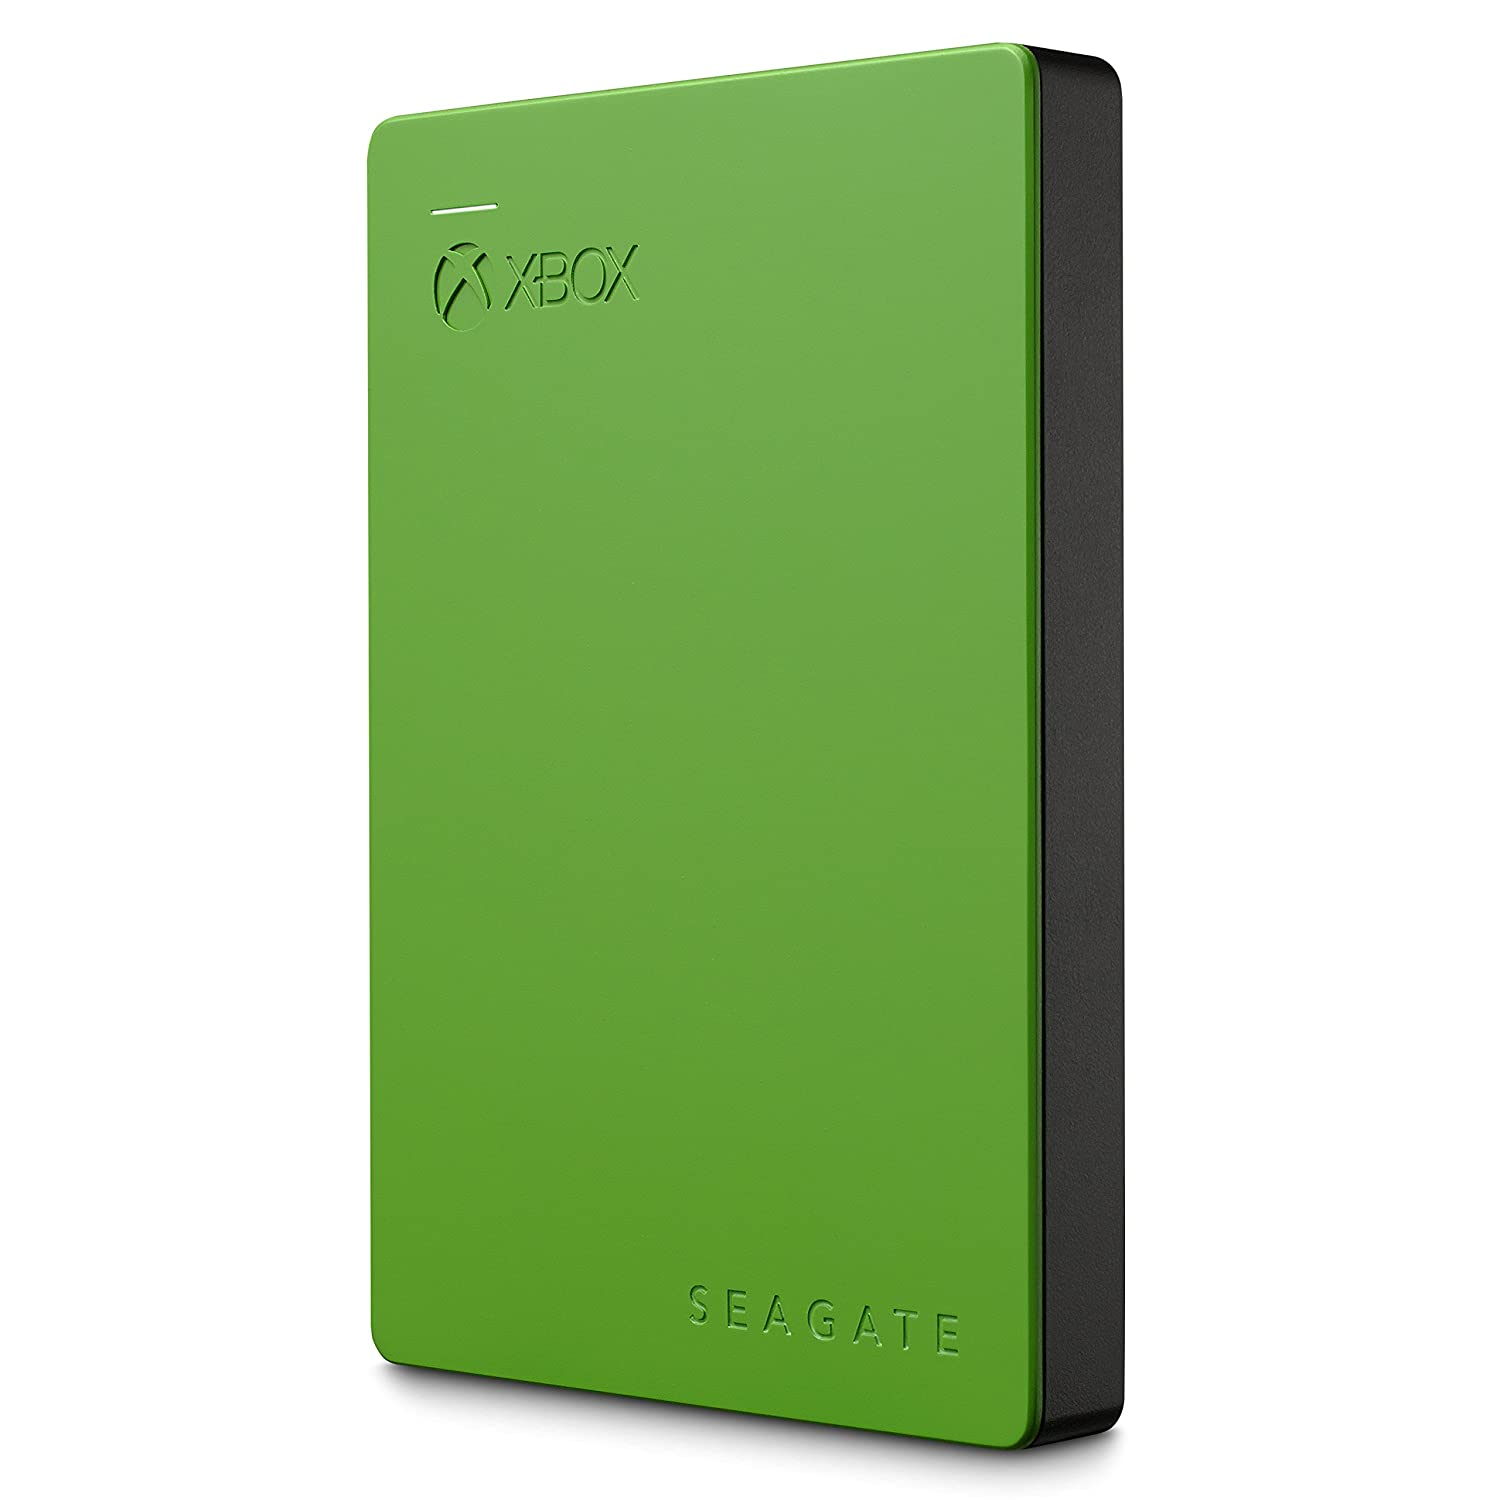 Amazon.com: Seagate Game Drive for Xbox 2TB Green (STEA2000403 ...